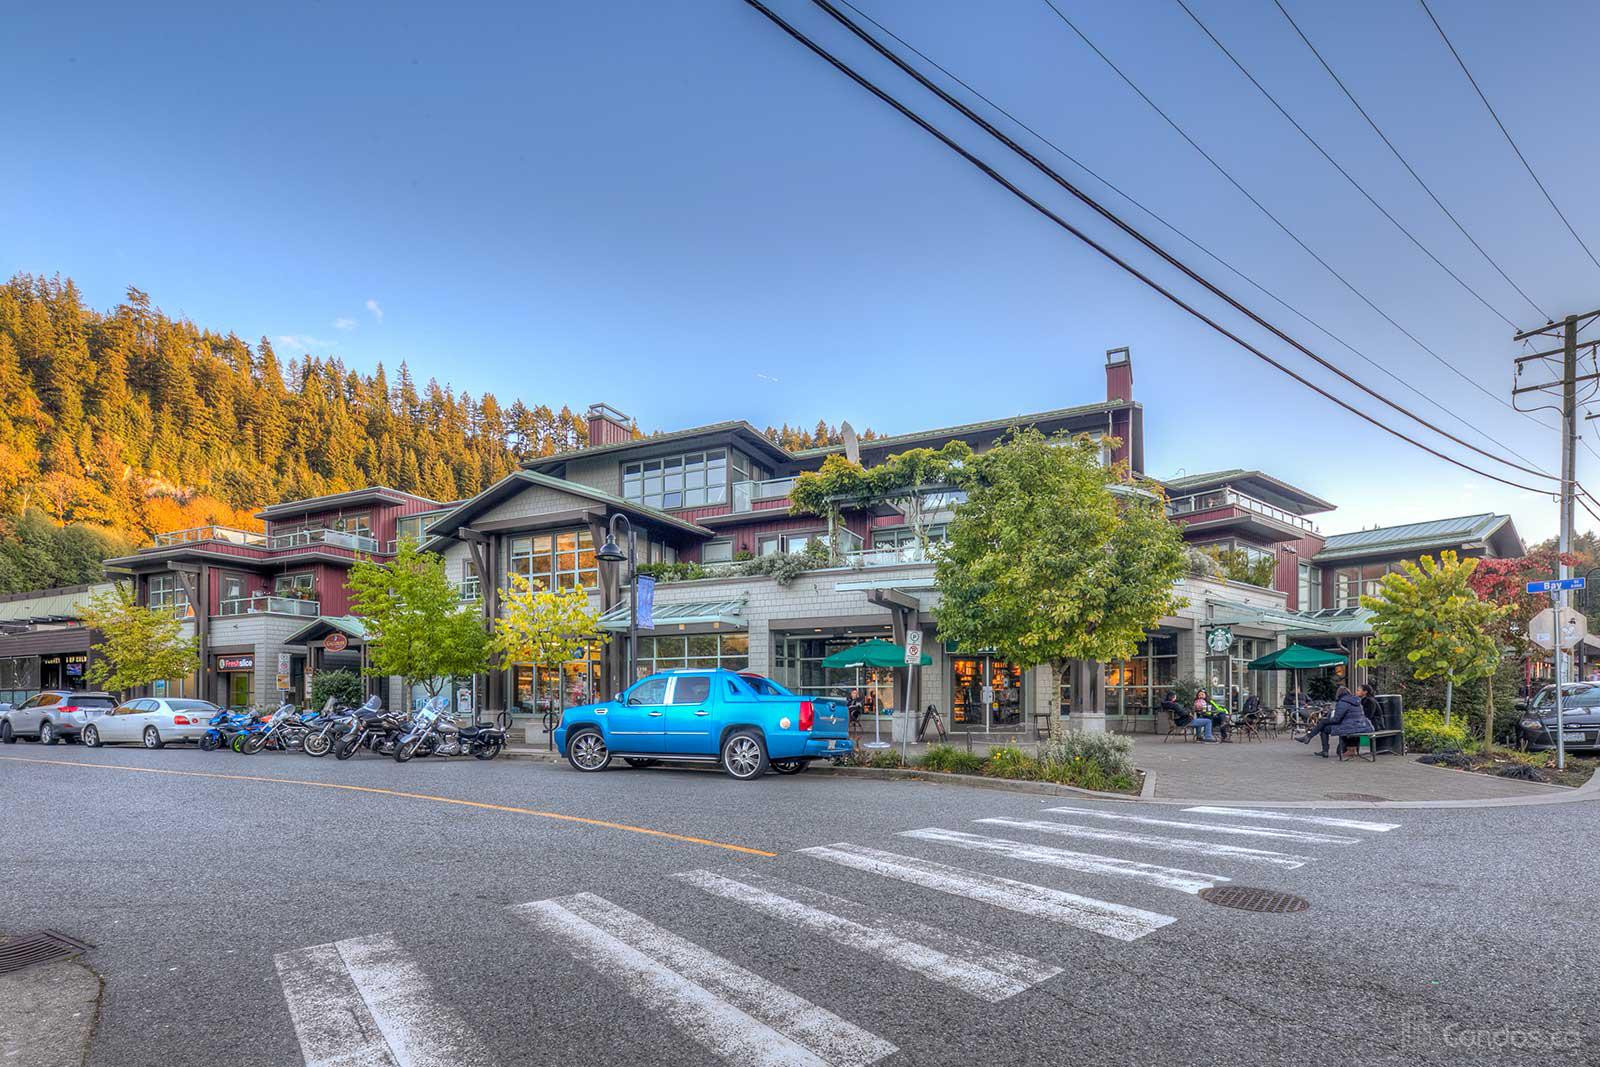 Galleries On The Bay at 6688 Royal Ave, West Vancouver 0